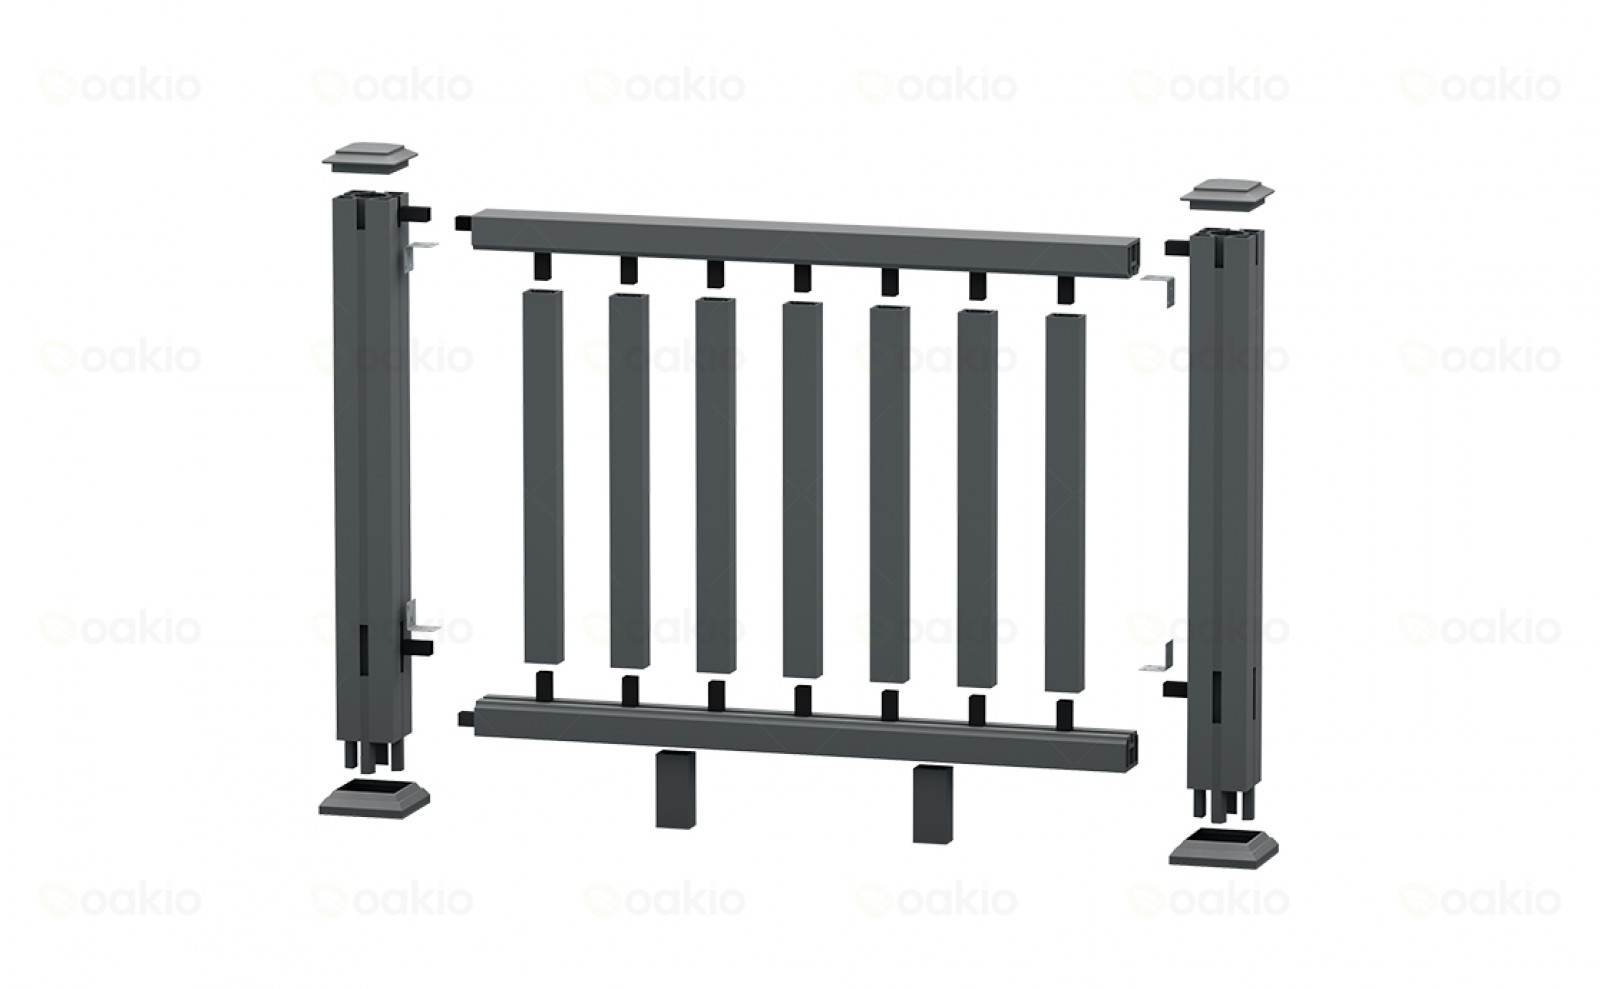 Iniwood Railings